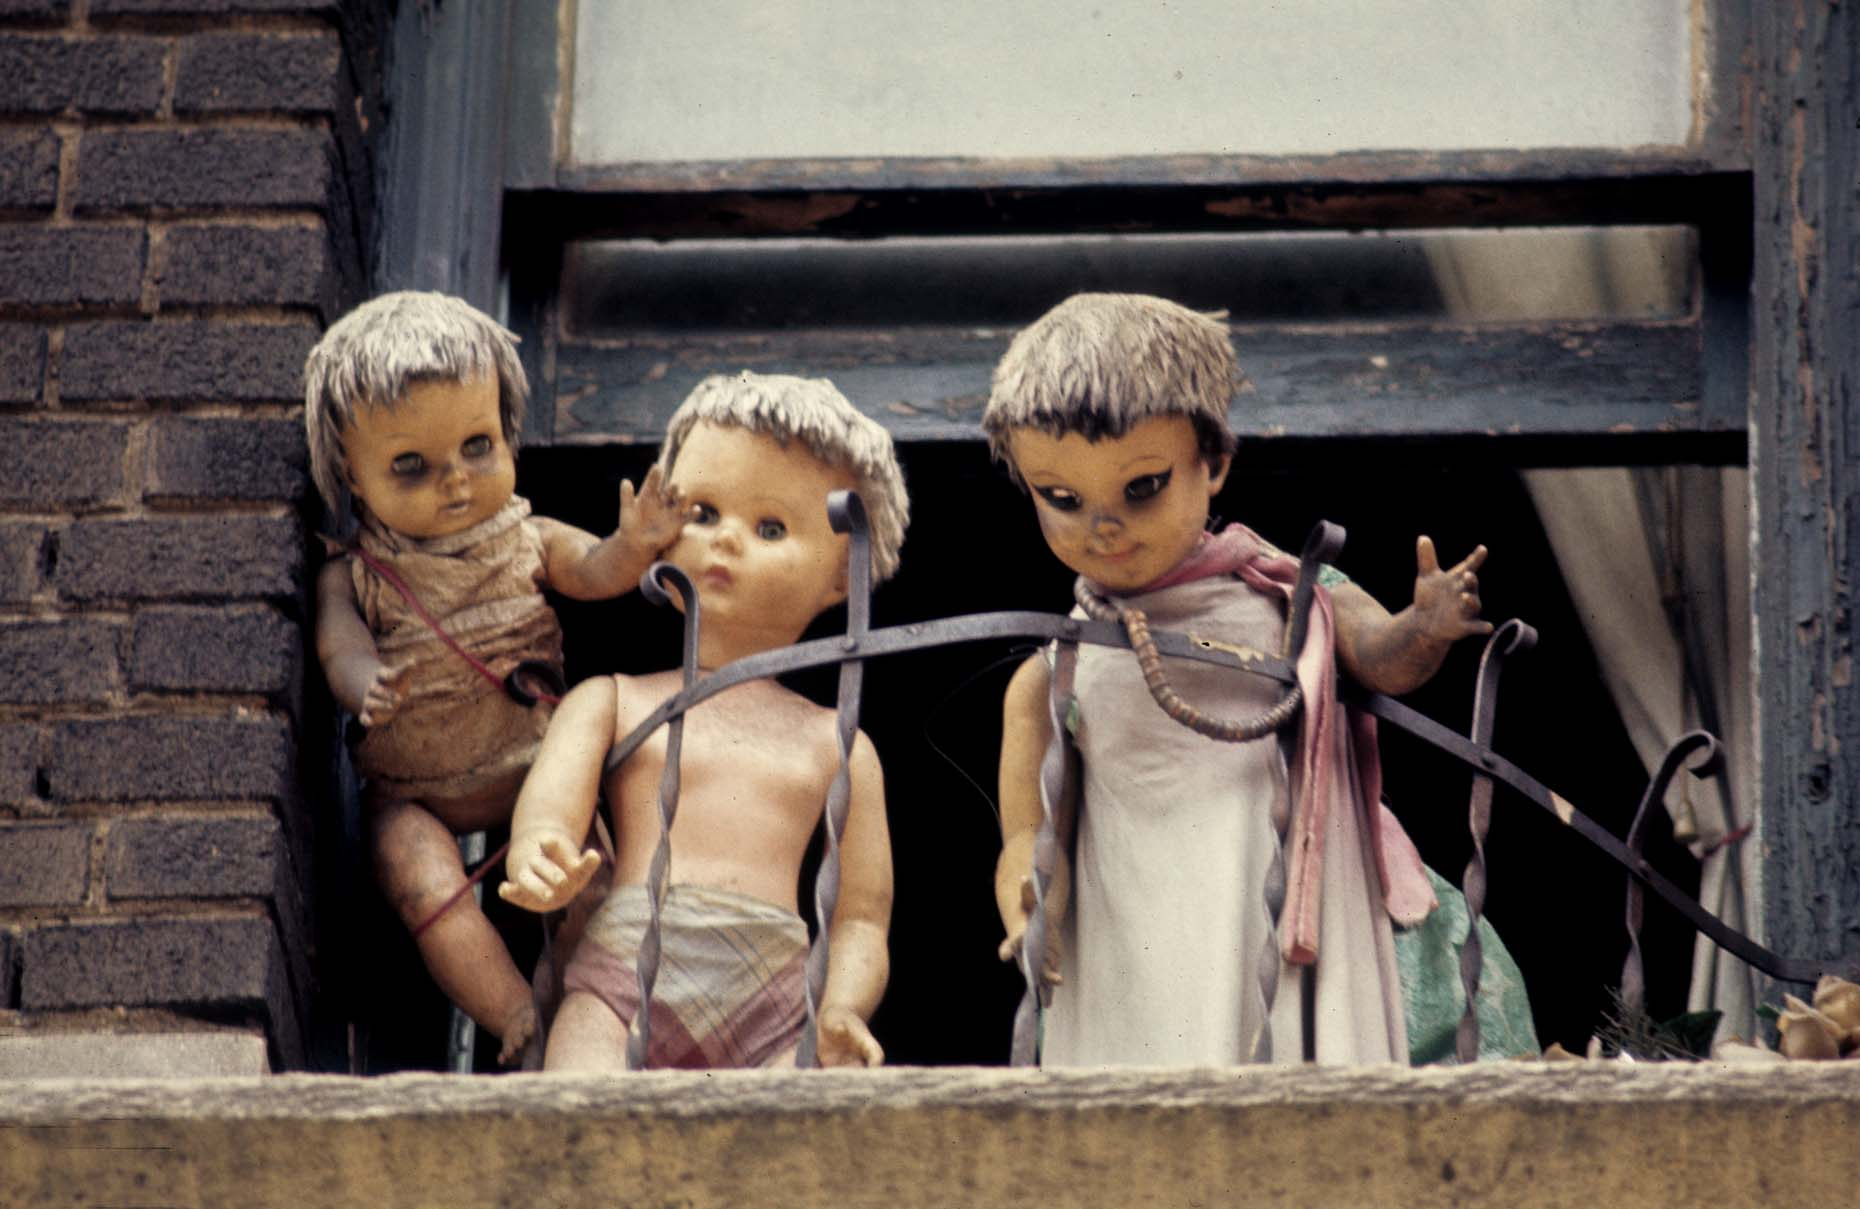 17_Dolls, South Bronx, 1970_.jpg